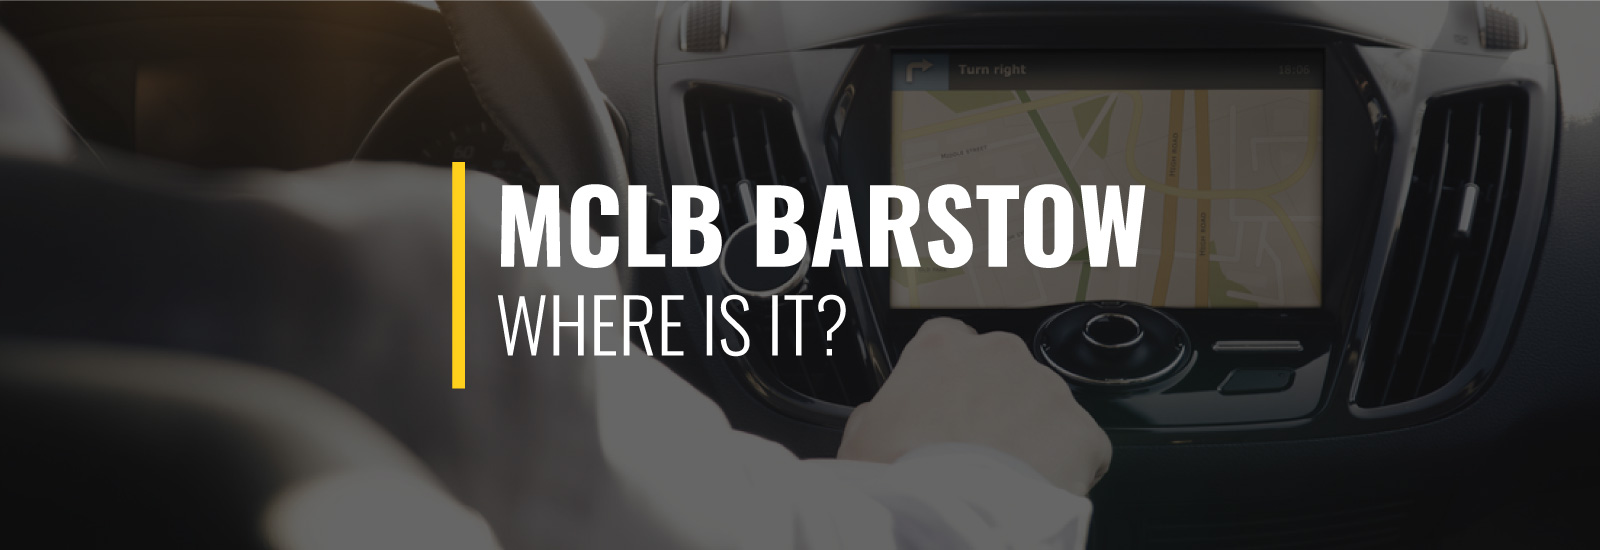 Where is MCLB Barstow?